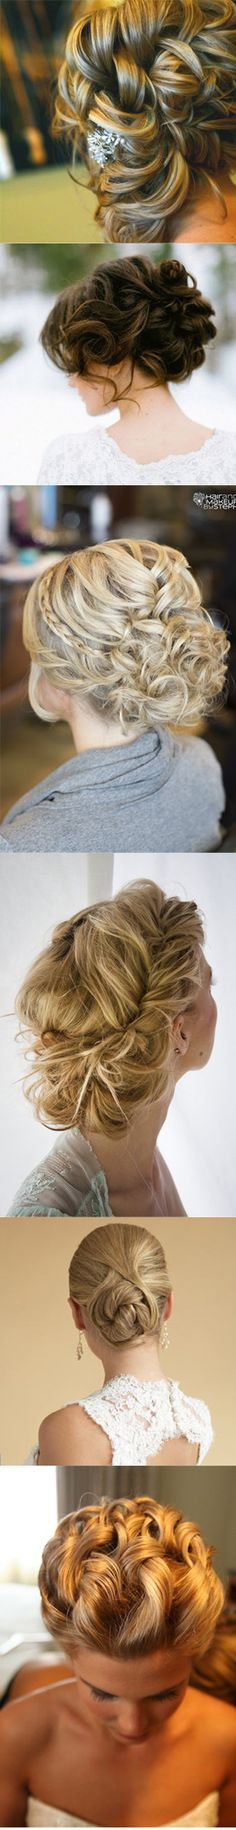 Bridal Updos - decorate them with hairvines, hairpins and slides, and combs.